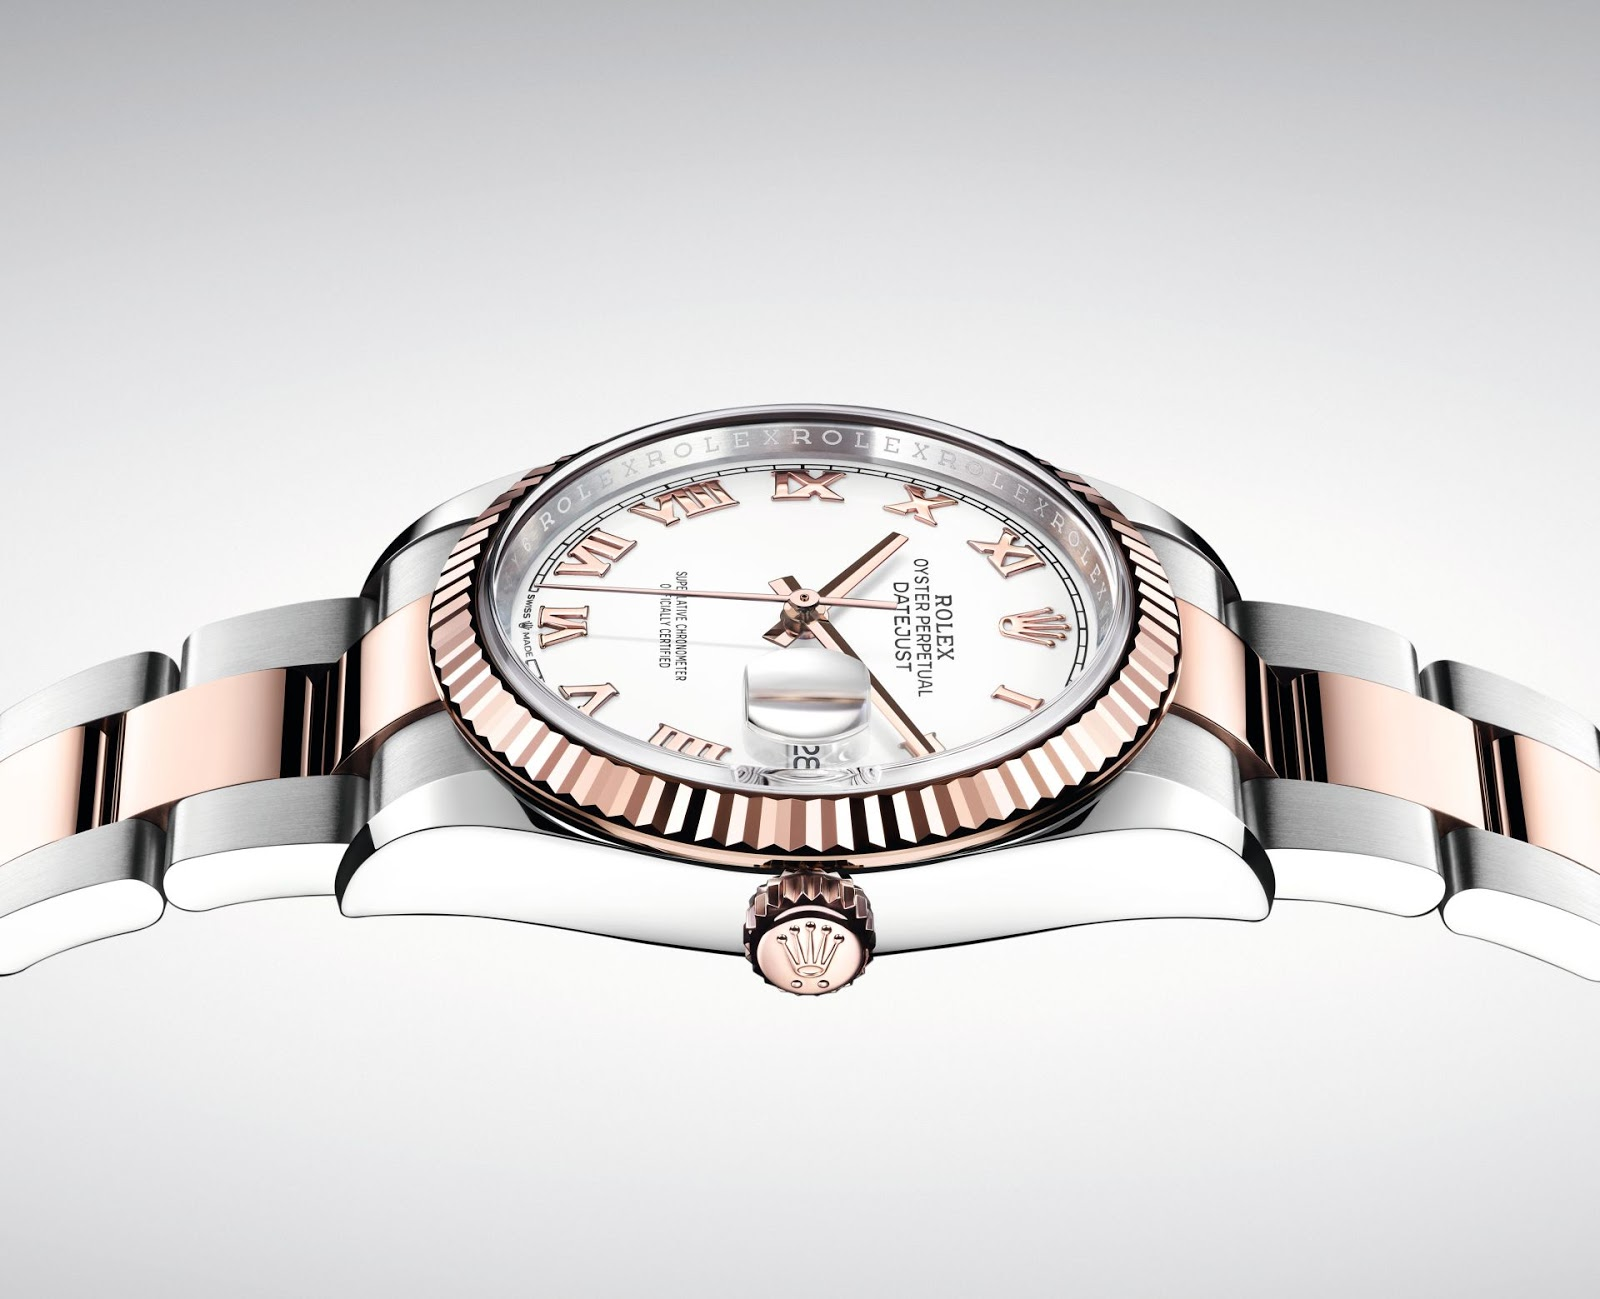 0a3bbb35d48 Rolex Oyster Perpetual Datejust 36 New Generation – Everose Rolesor and  Yellow Rolesor Models